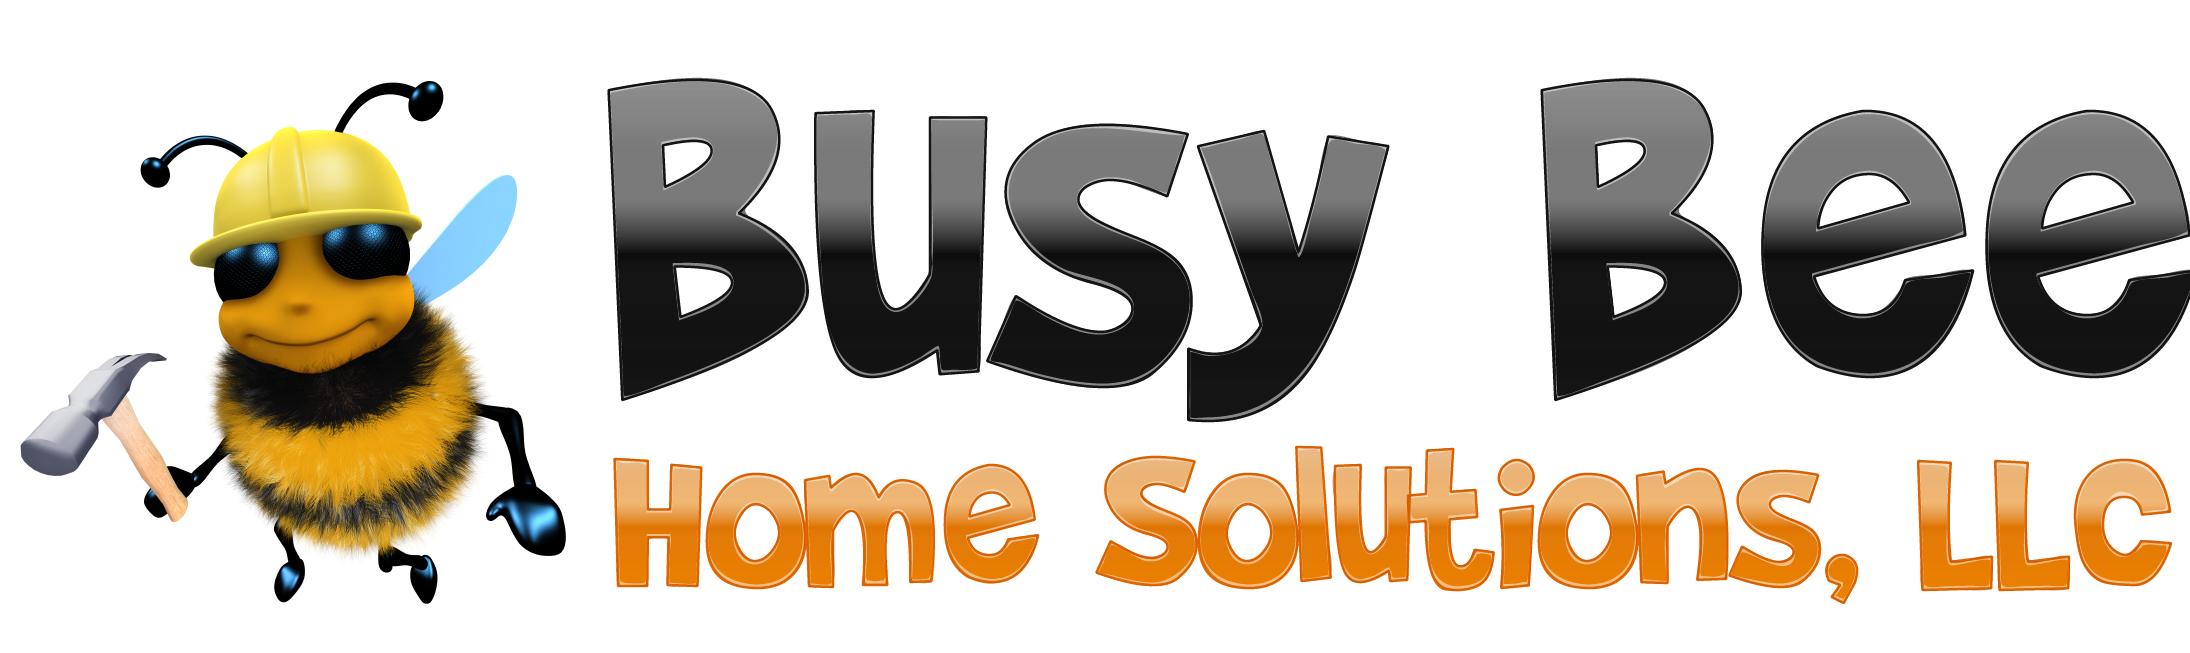 Busy Bee Home Solutions, LLC